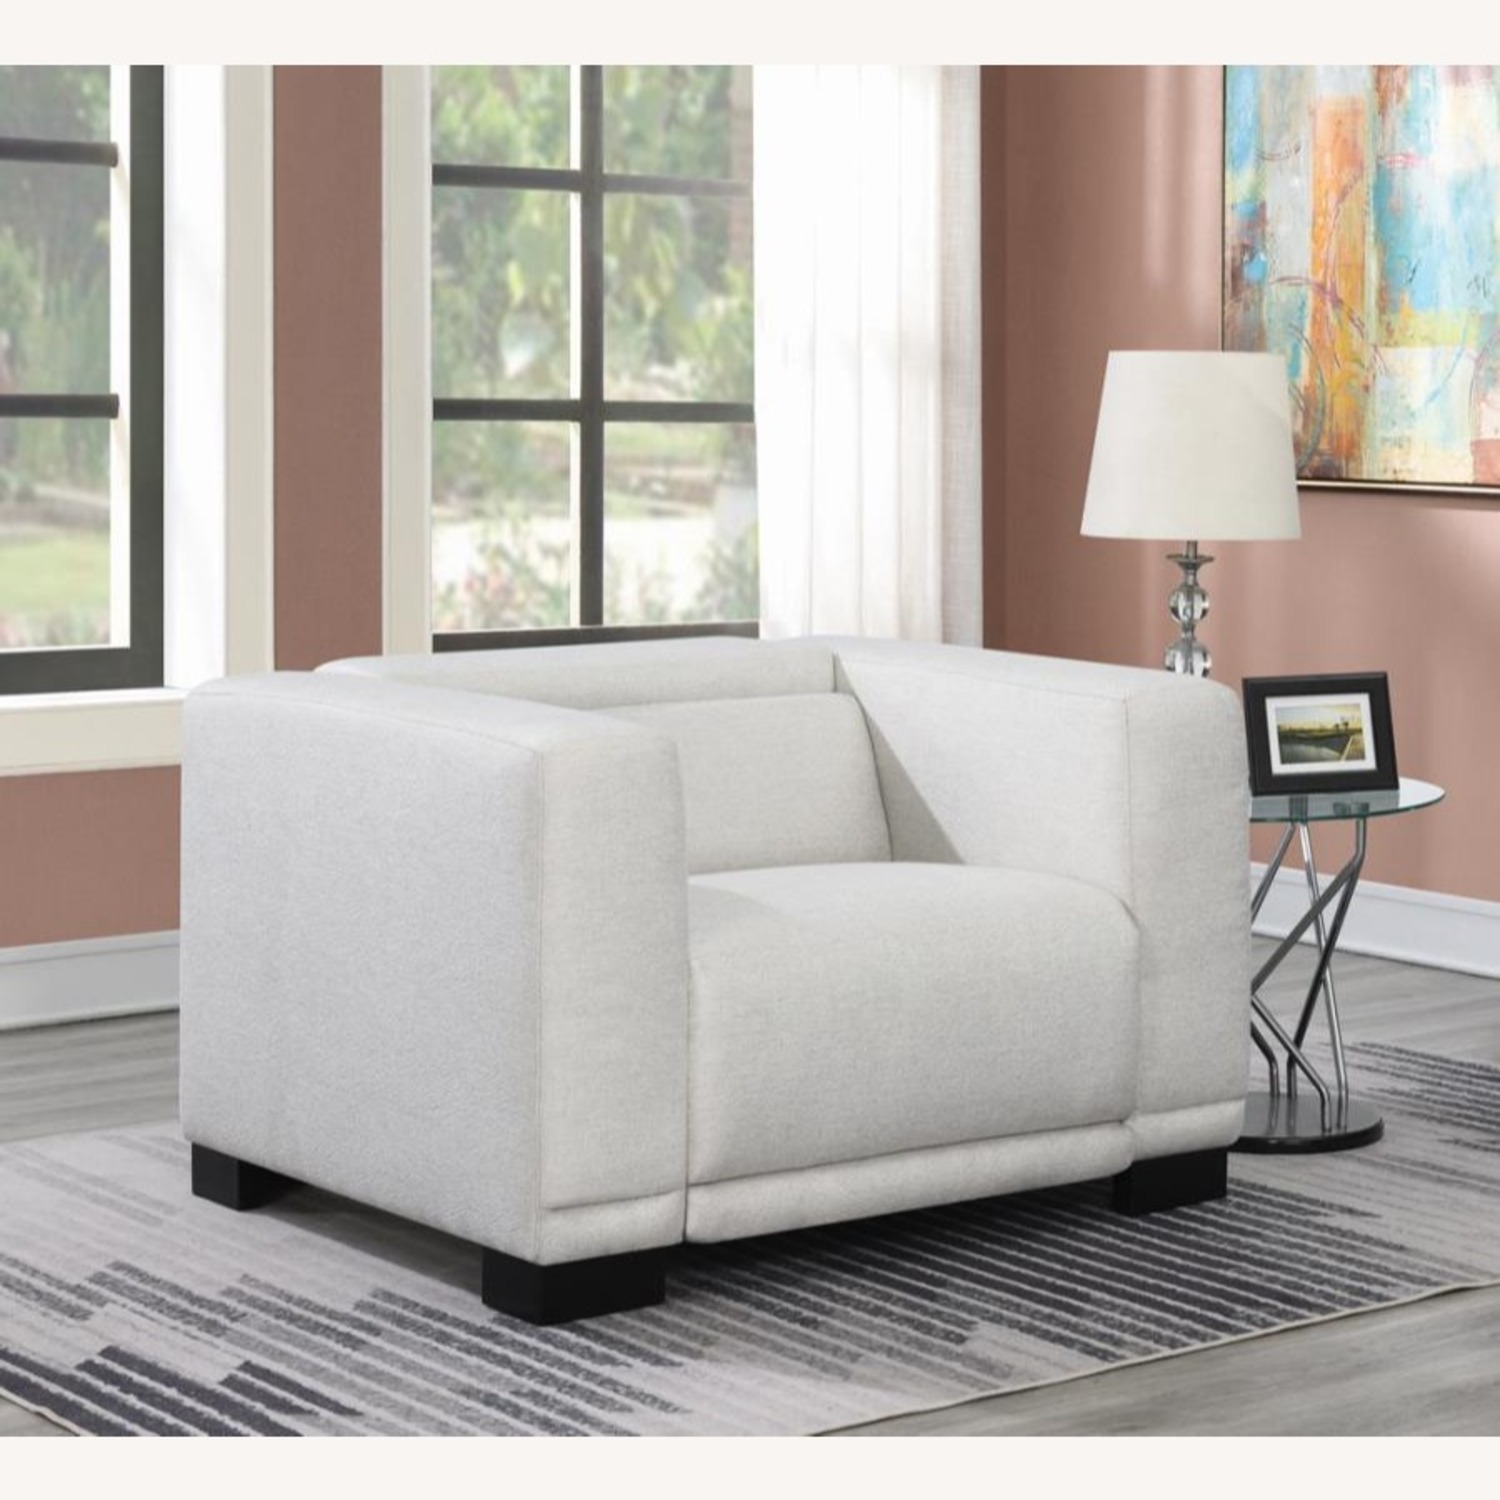 Power Recliner In Beige Chenille Fabric - image-7